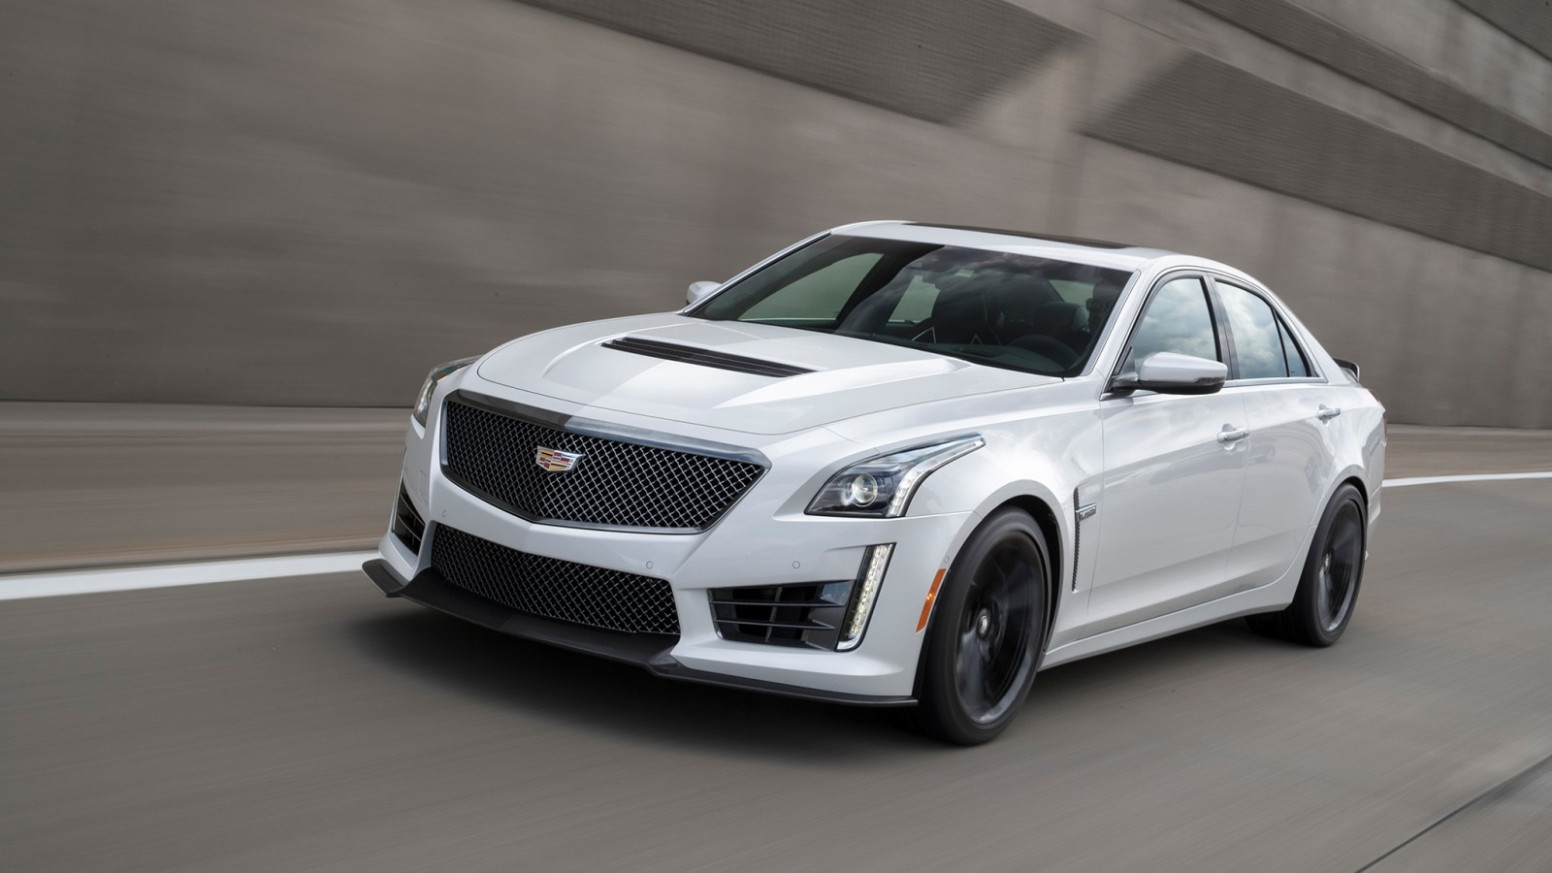 6 Cadillac CTS-V Prices, Reviews, and Pictures | Edmunds - 2020 cadillac cts v price